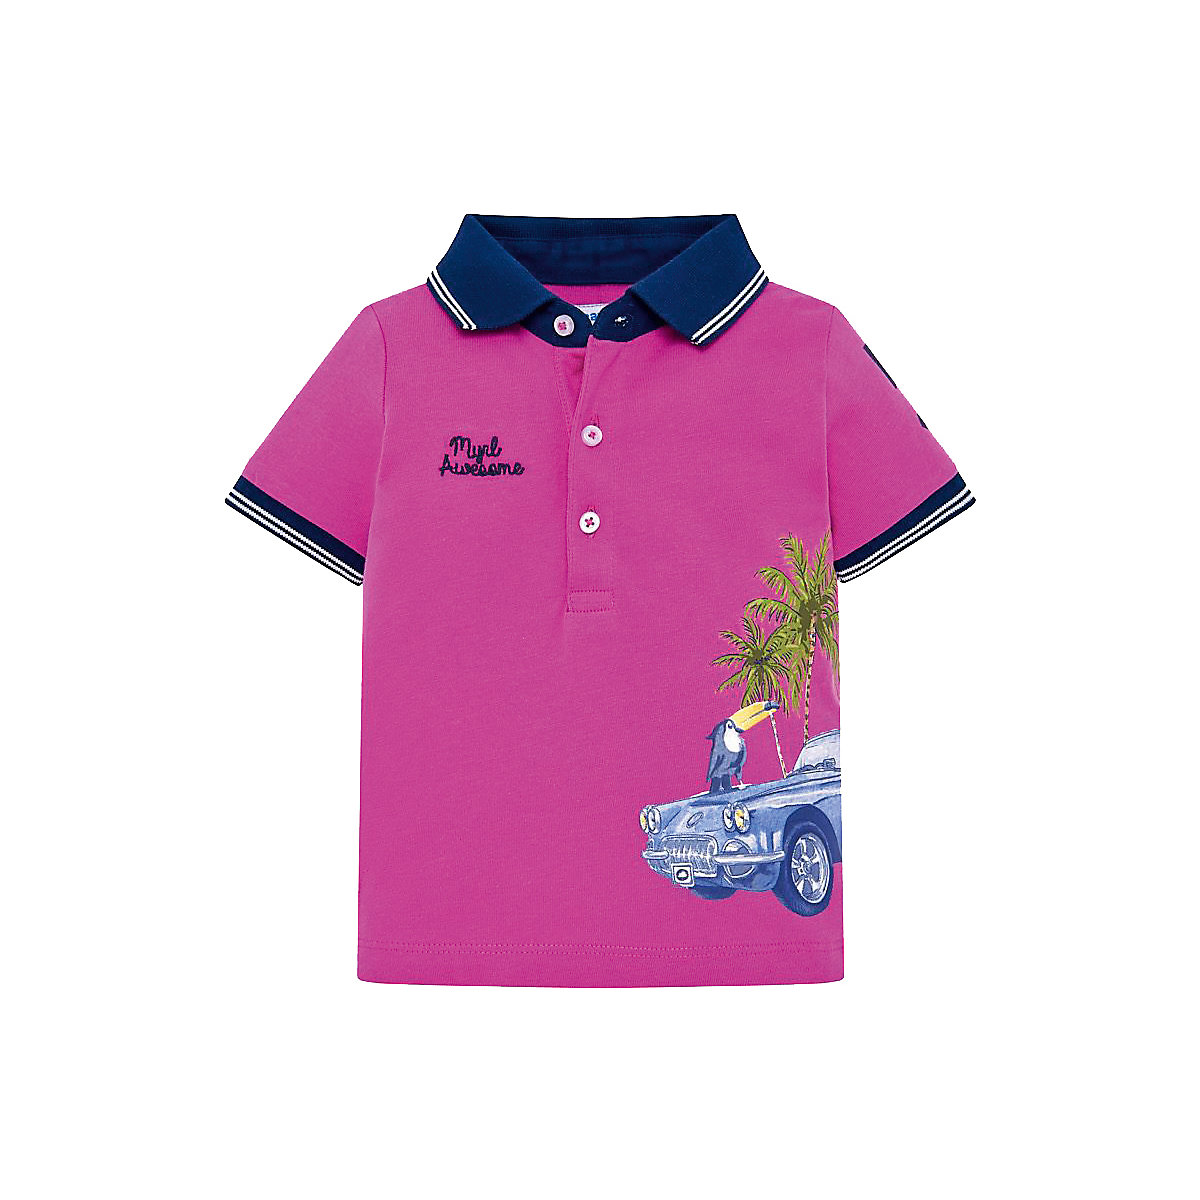 MAYORAL Polo Shirts 10688762 children clothing t-shirt shirt the print for boys